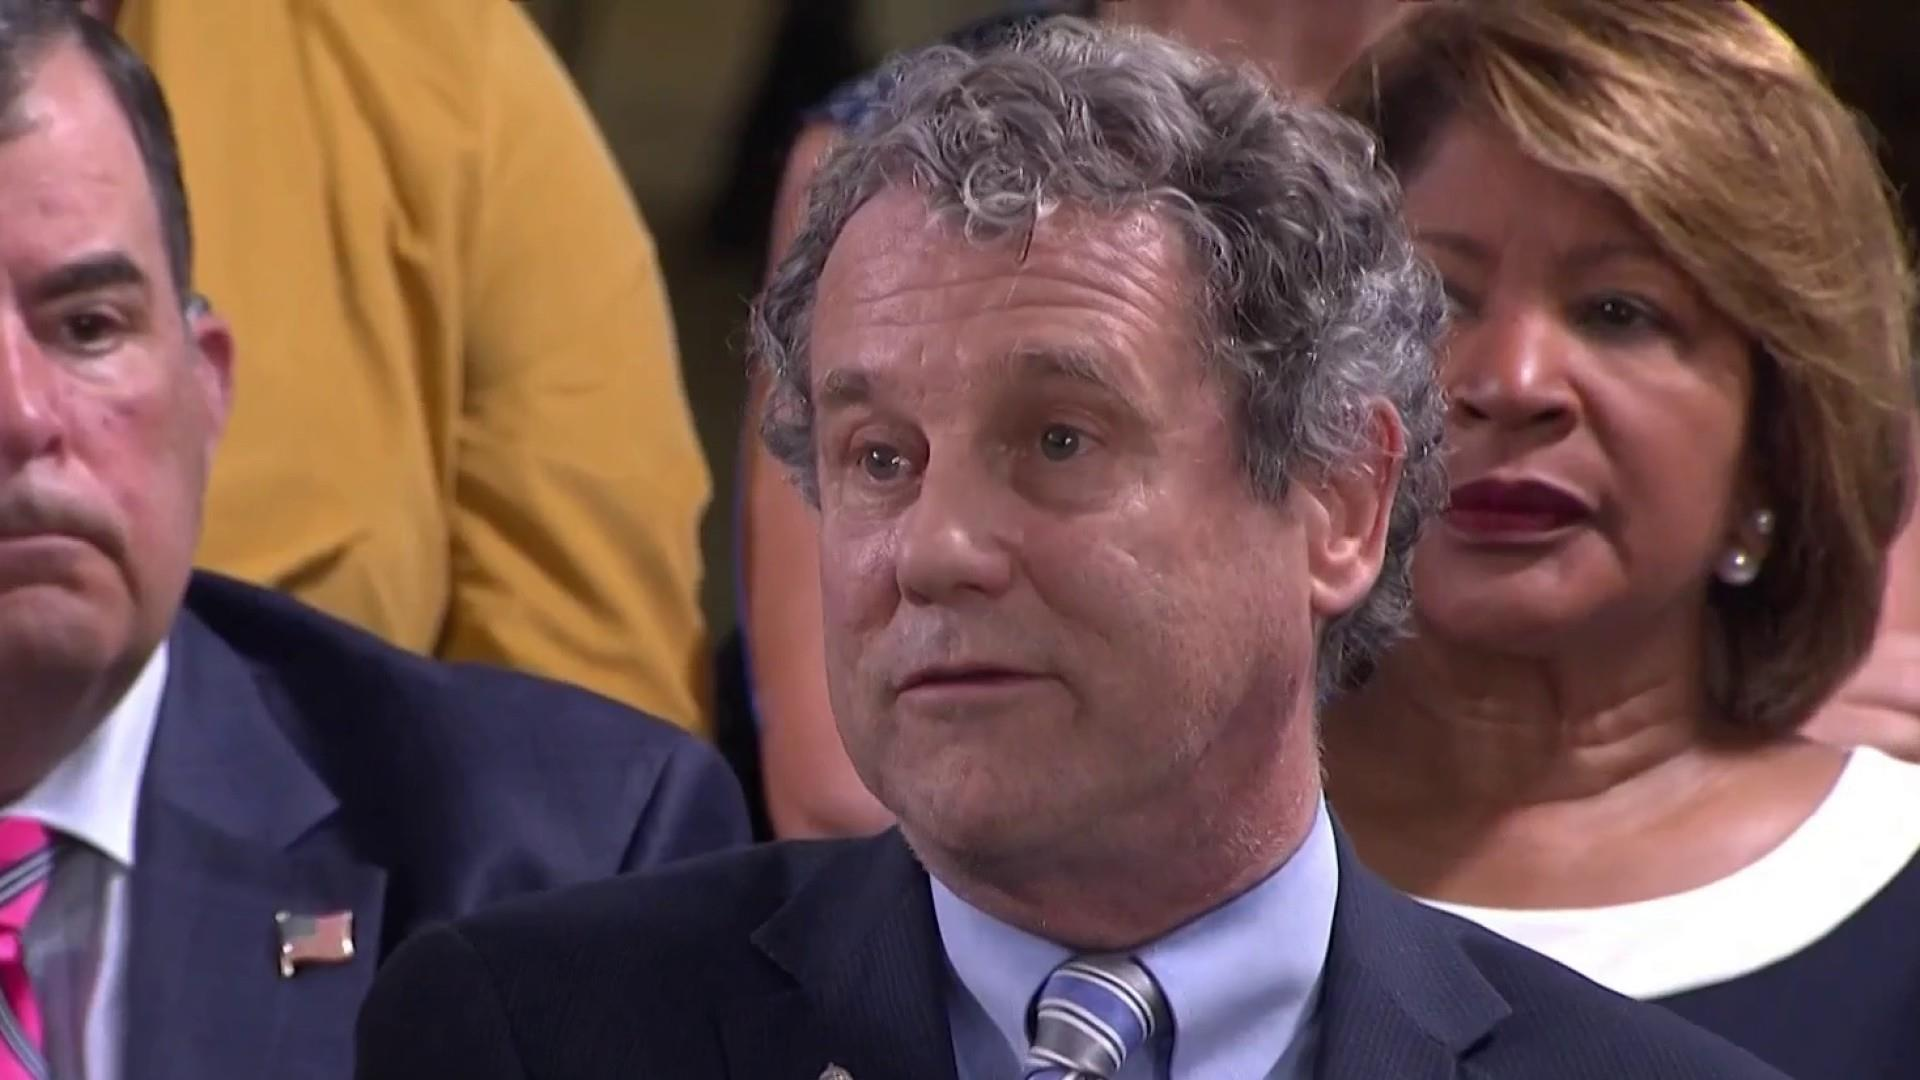 Sherrod Brown: Trump is a terrible President who has betrayed workers